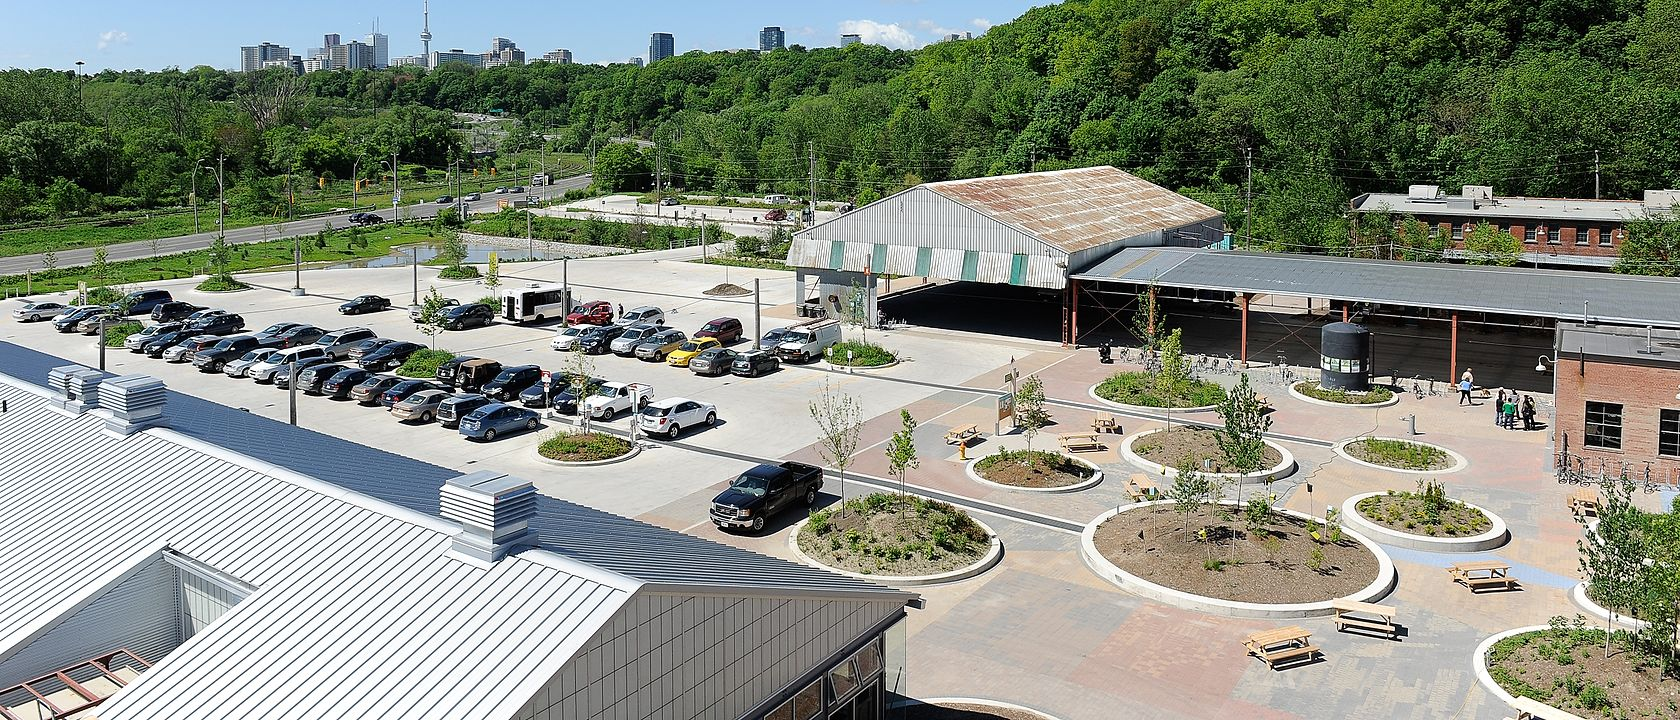 Landscaping at the newly renovated Evergreen Brick Works in Ontario